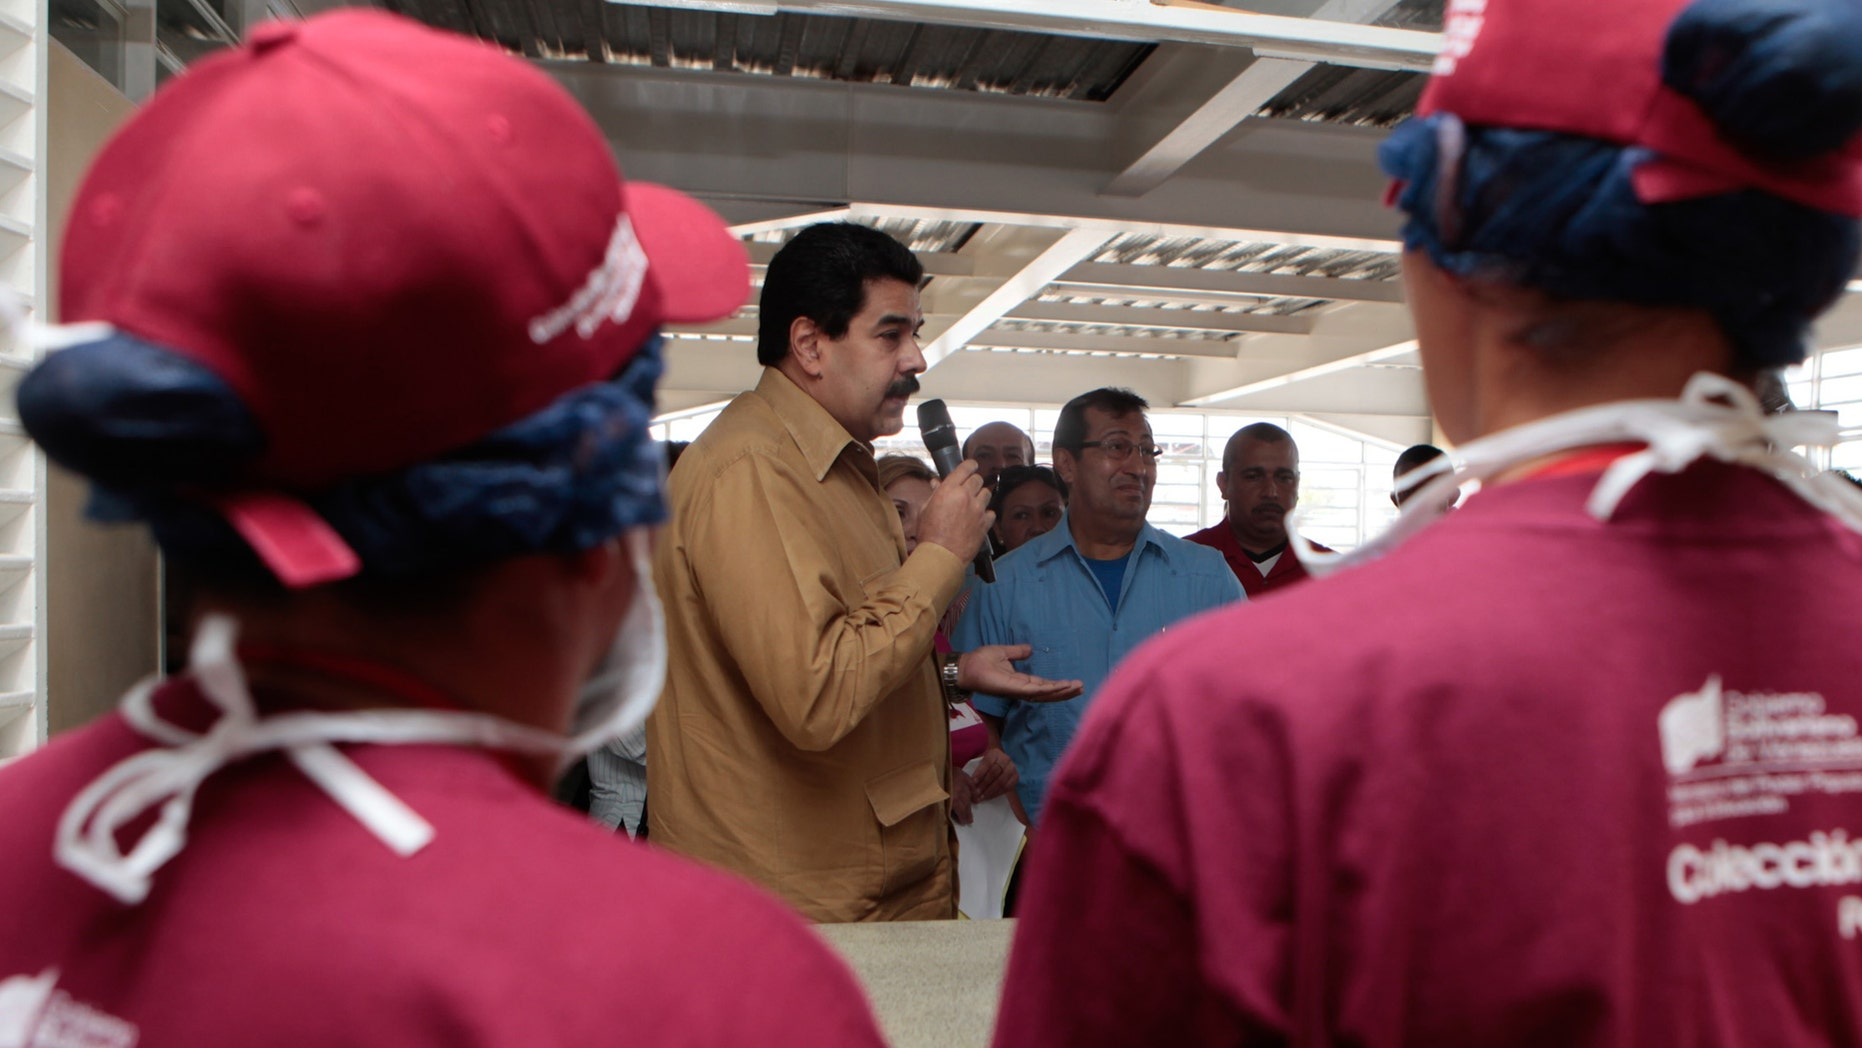 Jan. 18, 2013: In this photo released by Miraflores Press Office, Venezuela's Vice President Nicolas Maduro, center,  speaks to students during the inauguration of a school in Barinas, Venezuela.